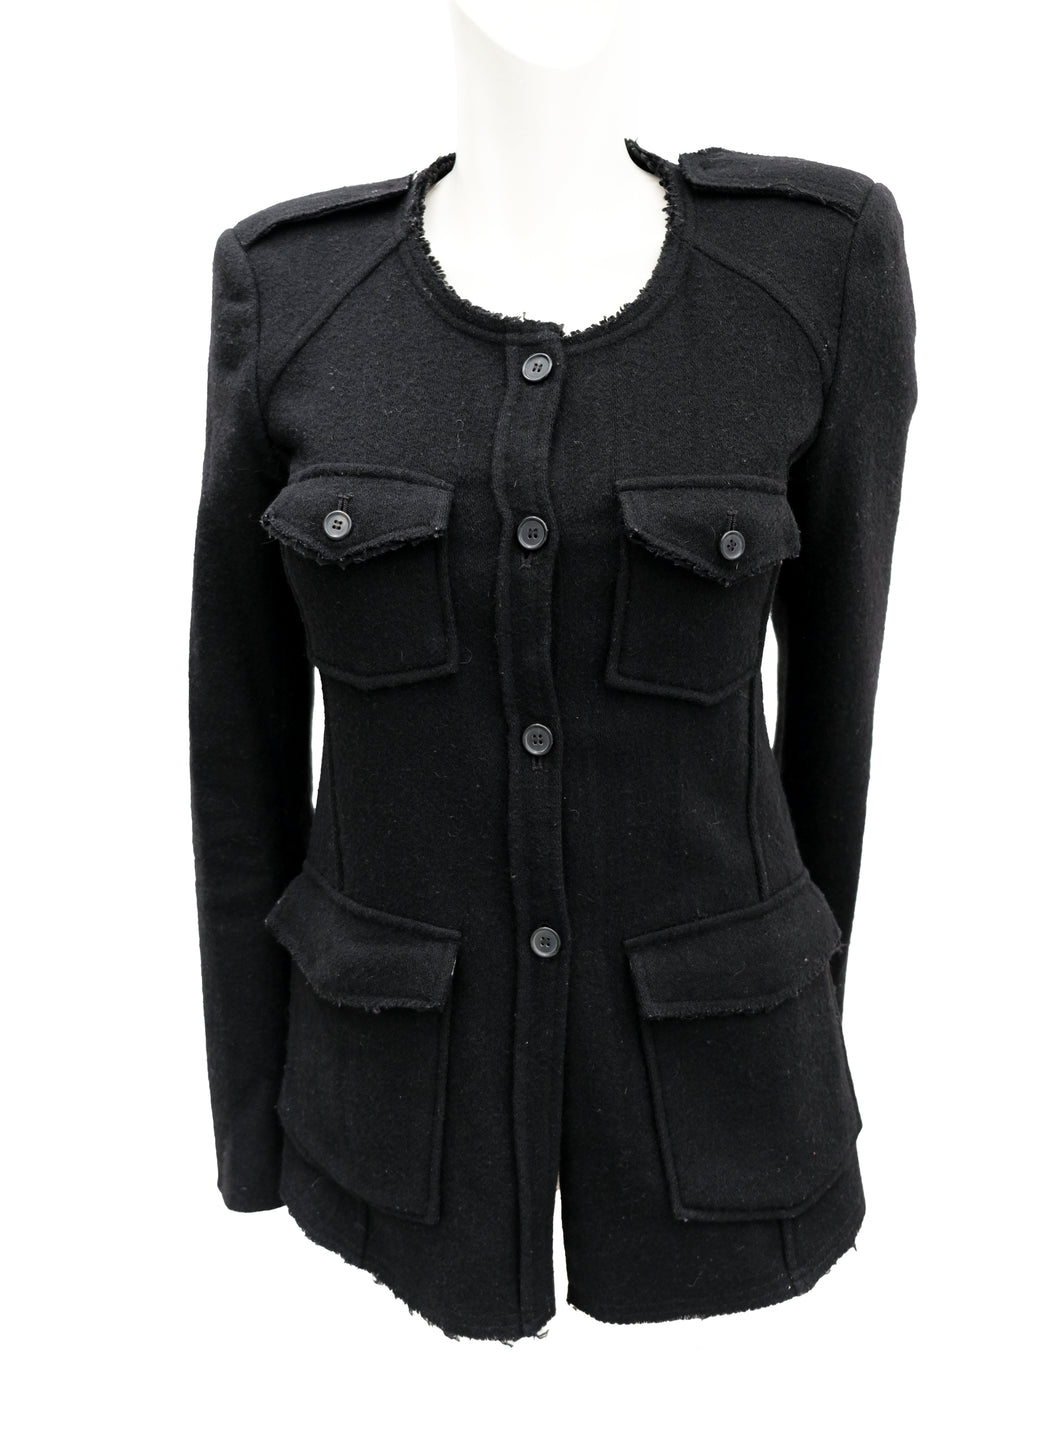 Isabel Marant Collarless Unstructured Jacket in Black Wool, UK8-10